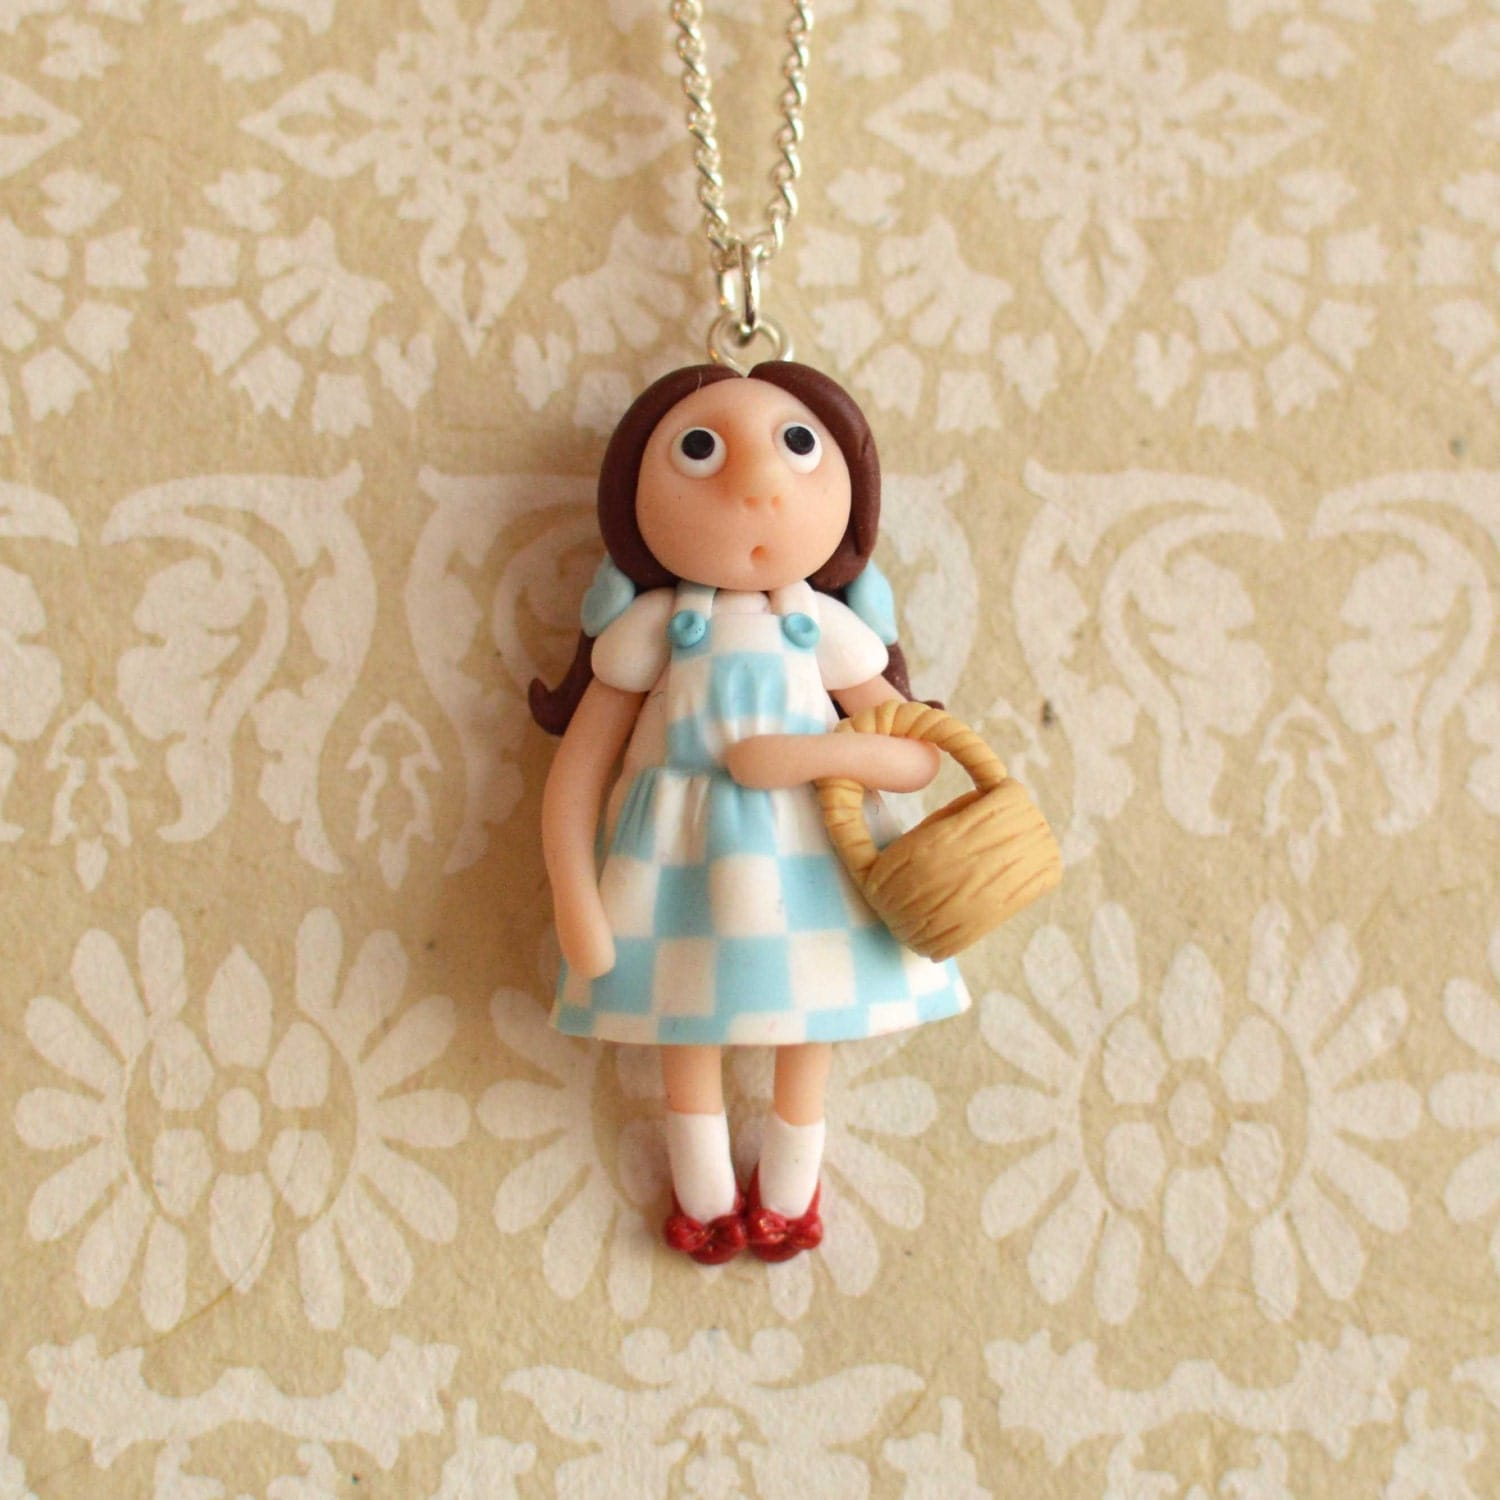 OOAK handsculpted Dorothy (Wizard of Oz)  pendant with chain